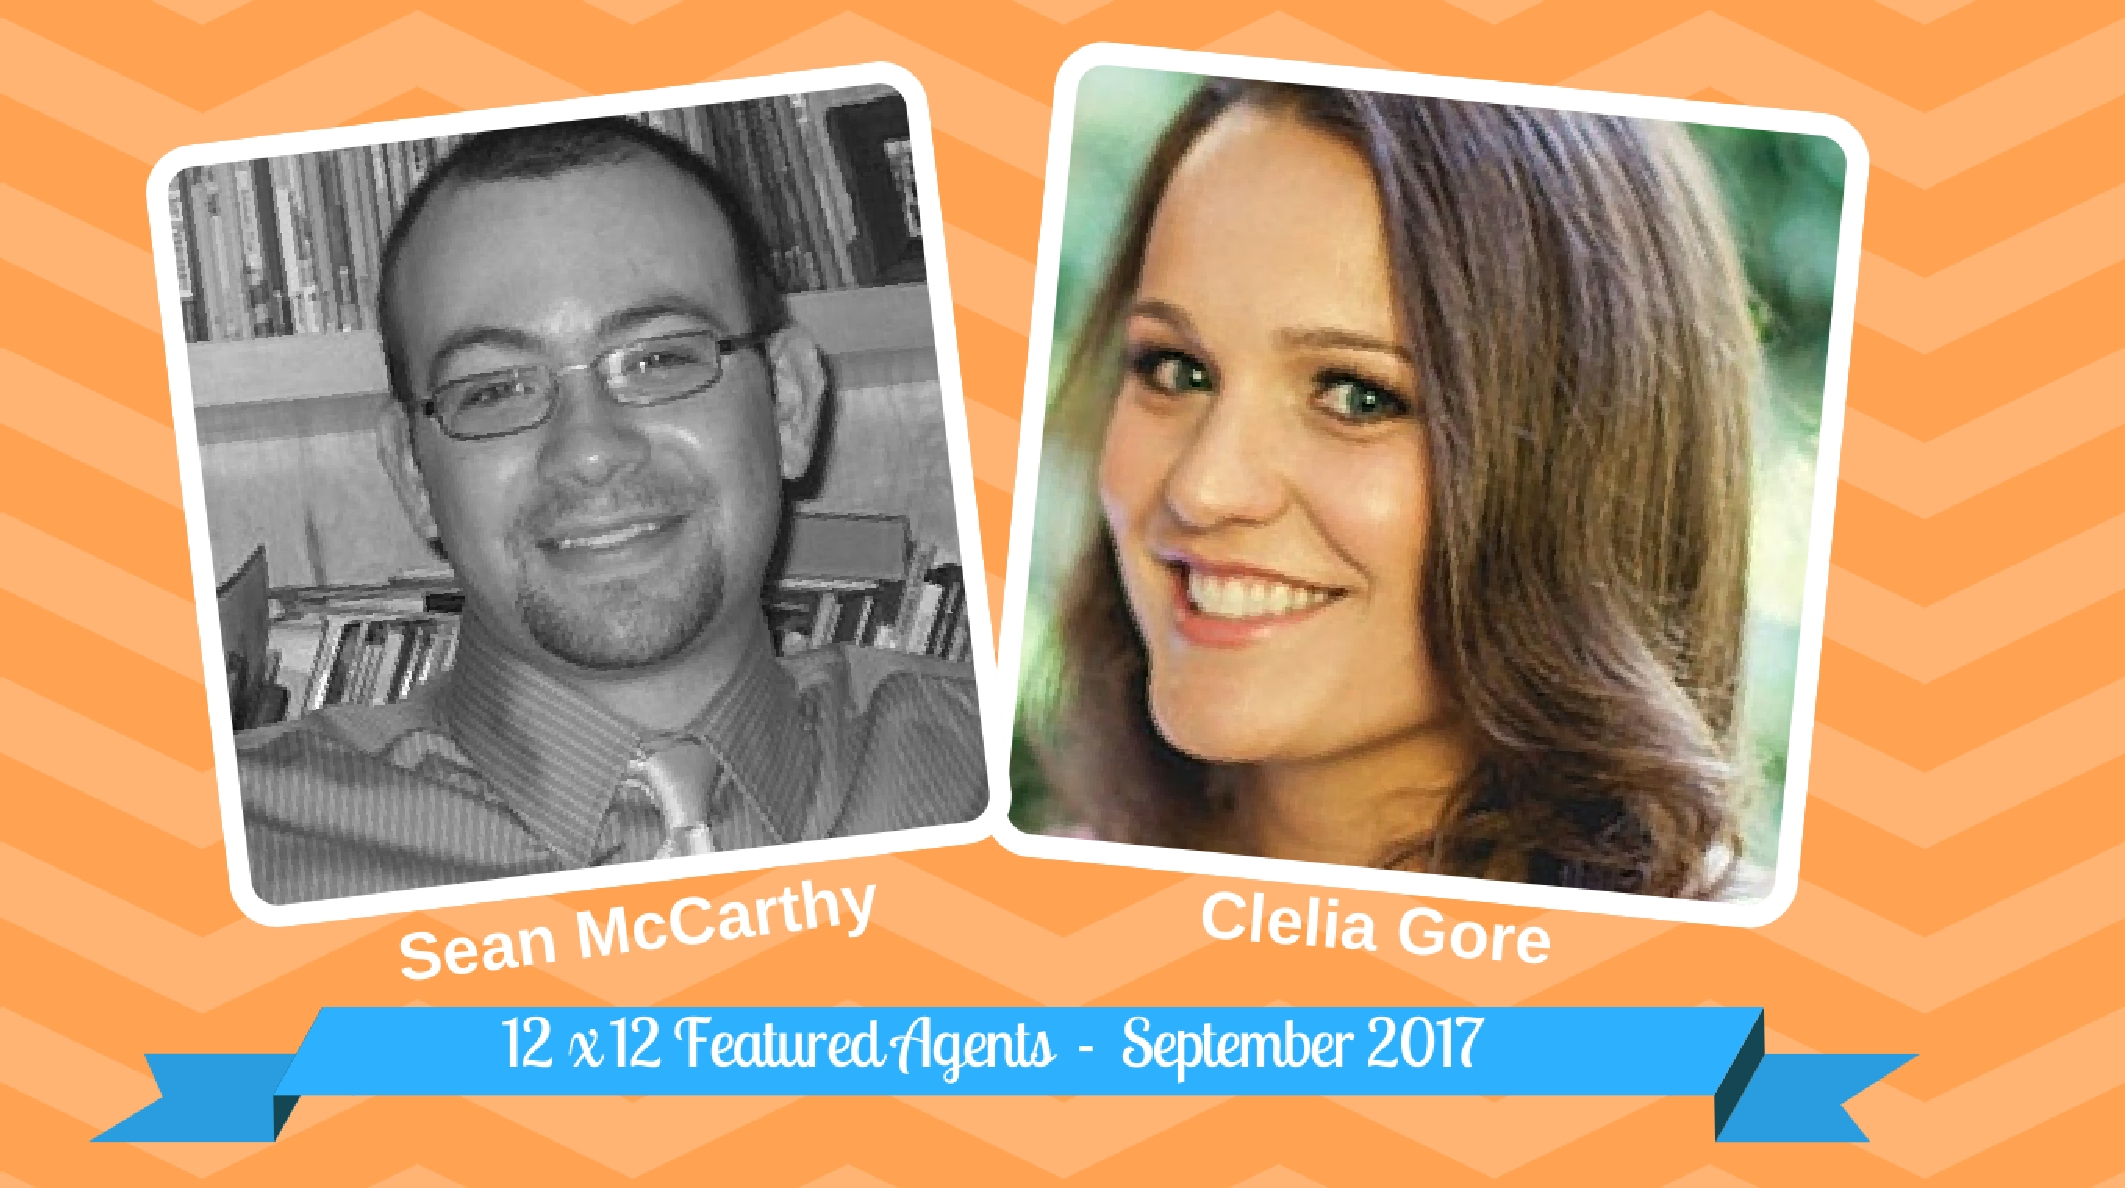 September 2017 Agents - Sean McCarthy And Clelia Gore